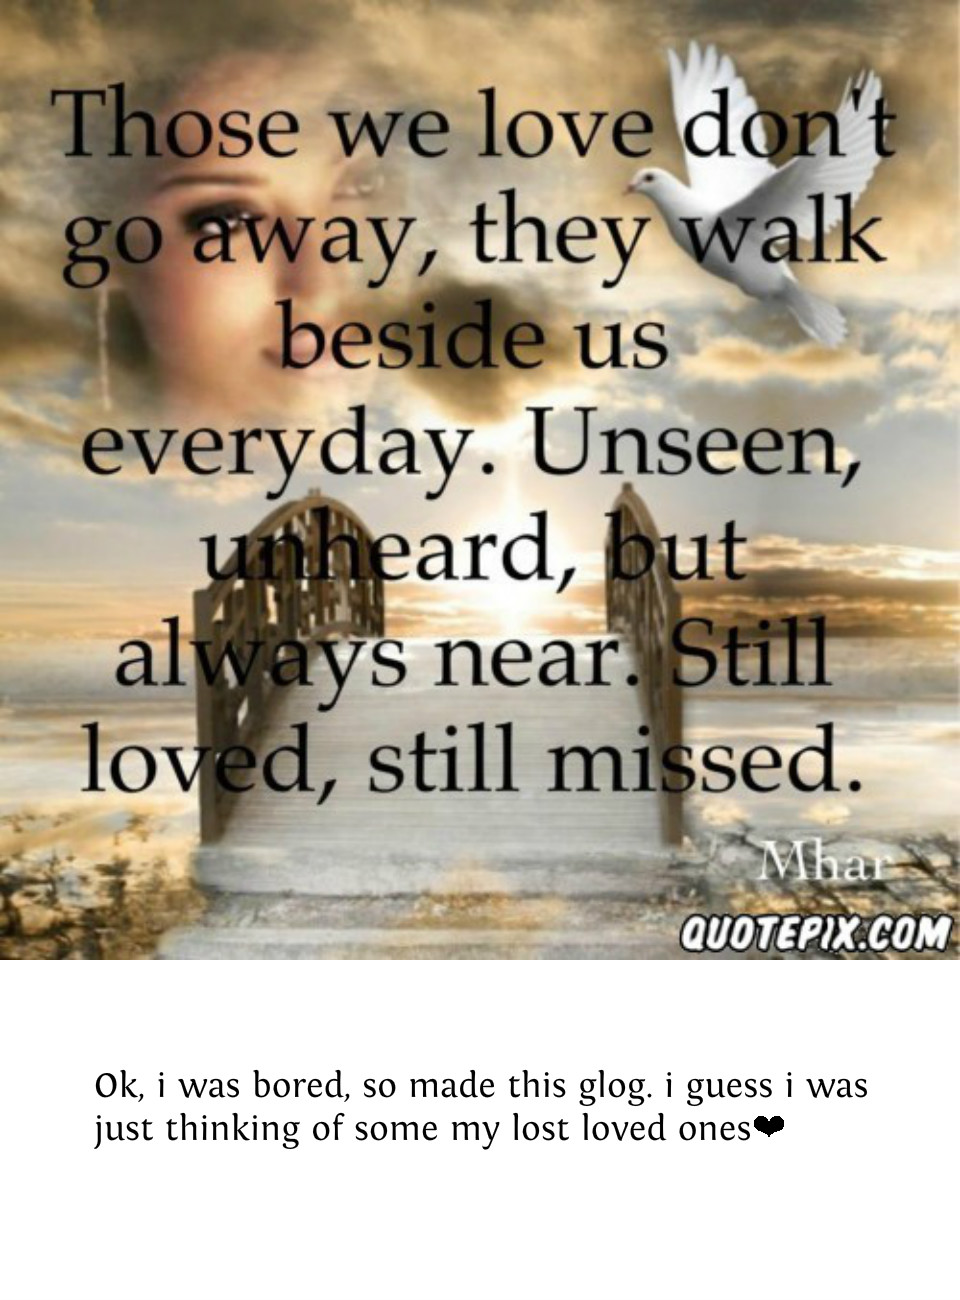 Quote For Lost Loved Ones : 852455537-for-lost-loved-ones--source.jpg